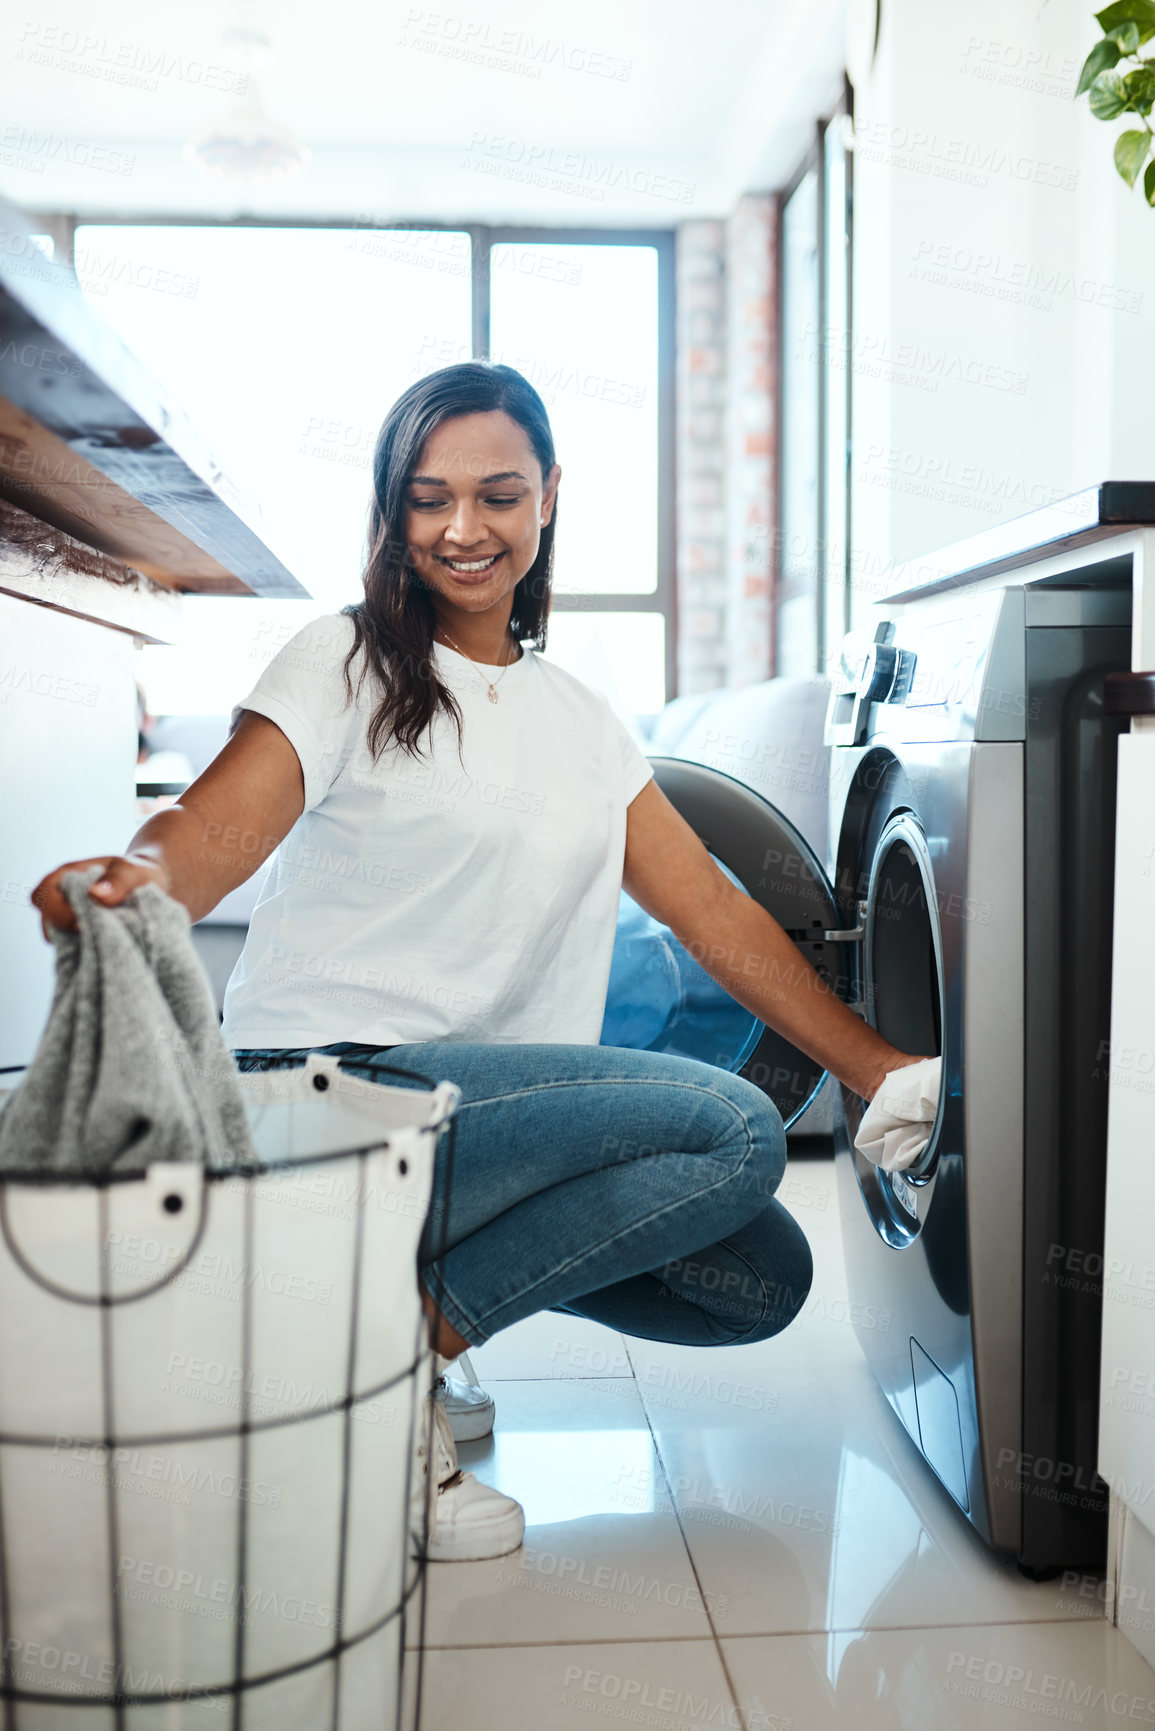 Buy stock photo Shot of a young woman using a washing machine at home